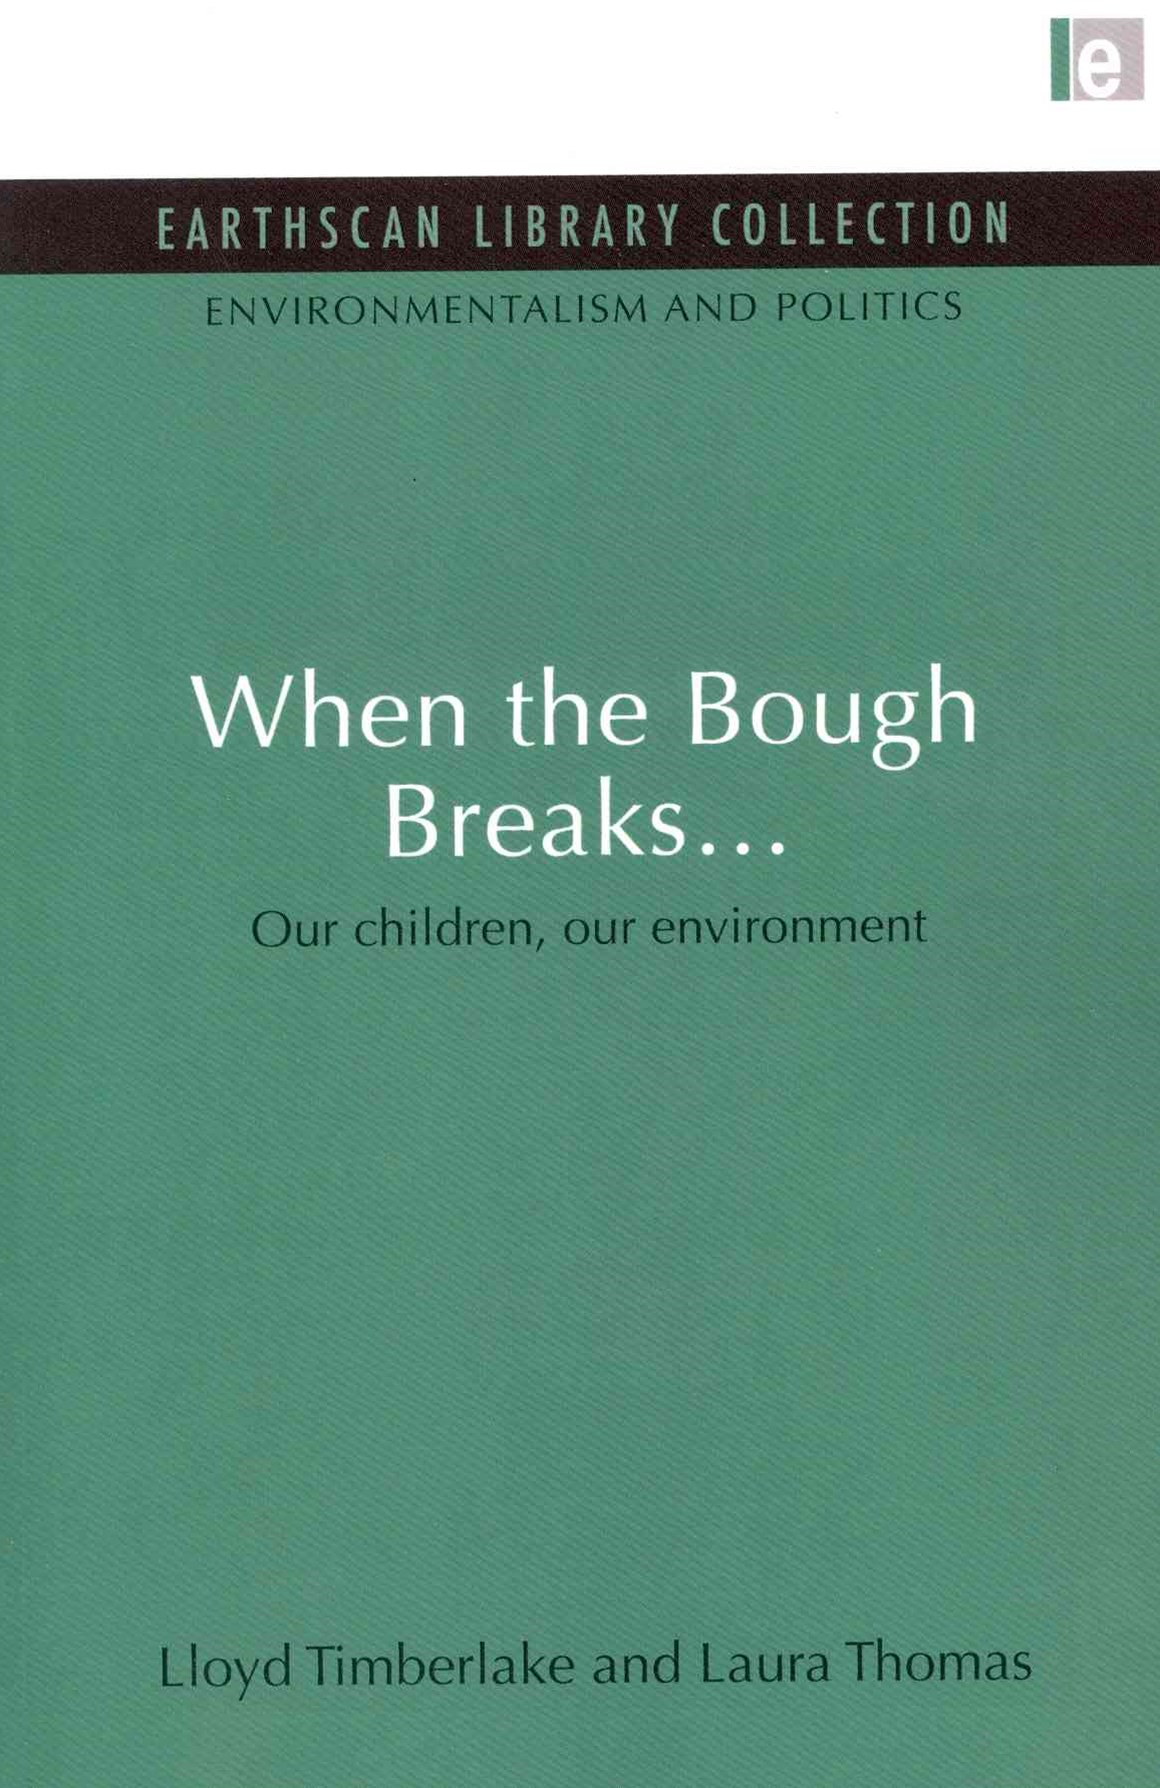 When the Bough Breaks...